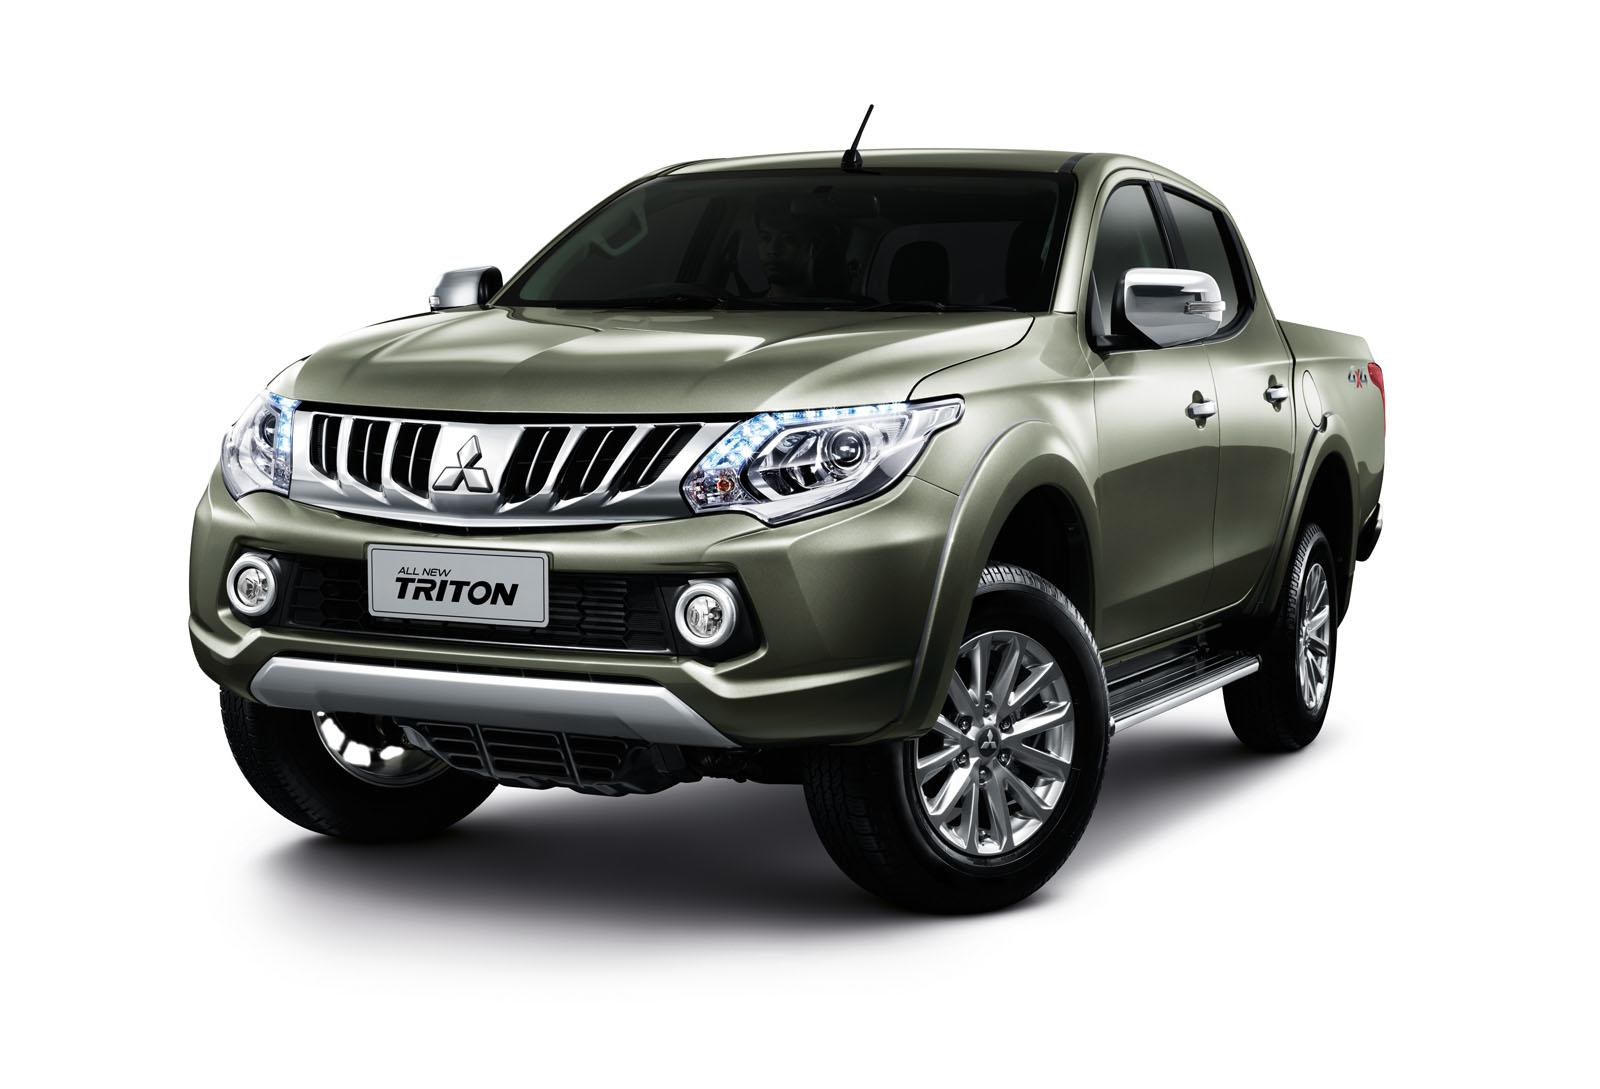 2015 Mitsubishi Triton / L200 Debuts in Thailand - Video, Photo